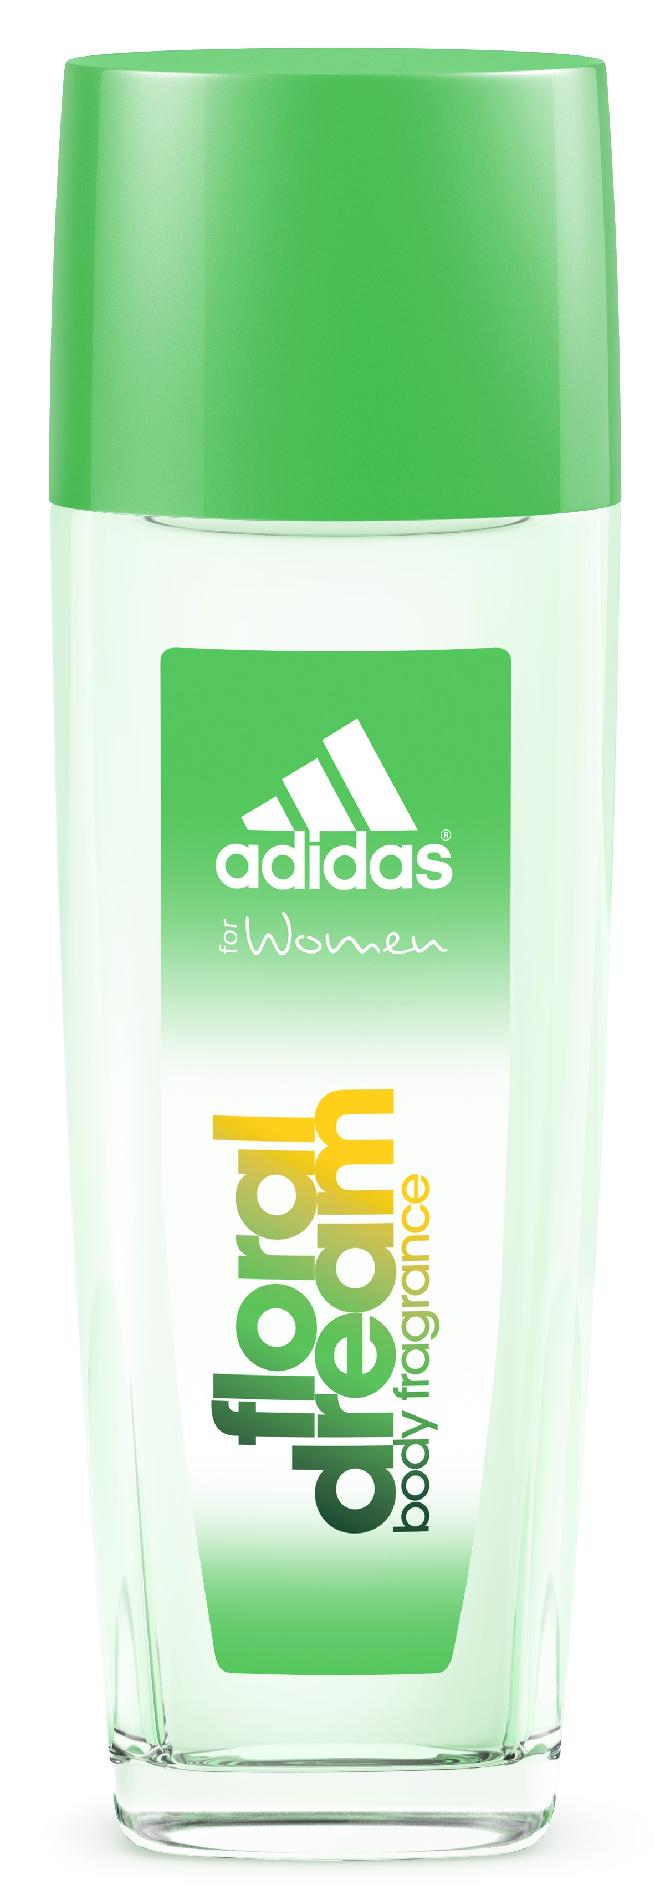 Adidas dns women floral dream 75ml